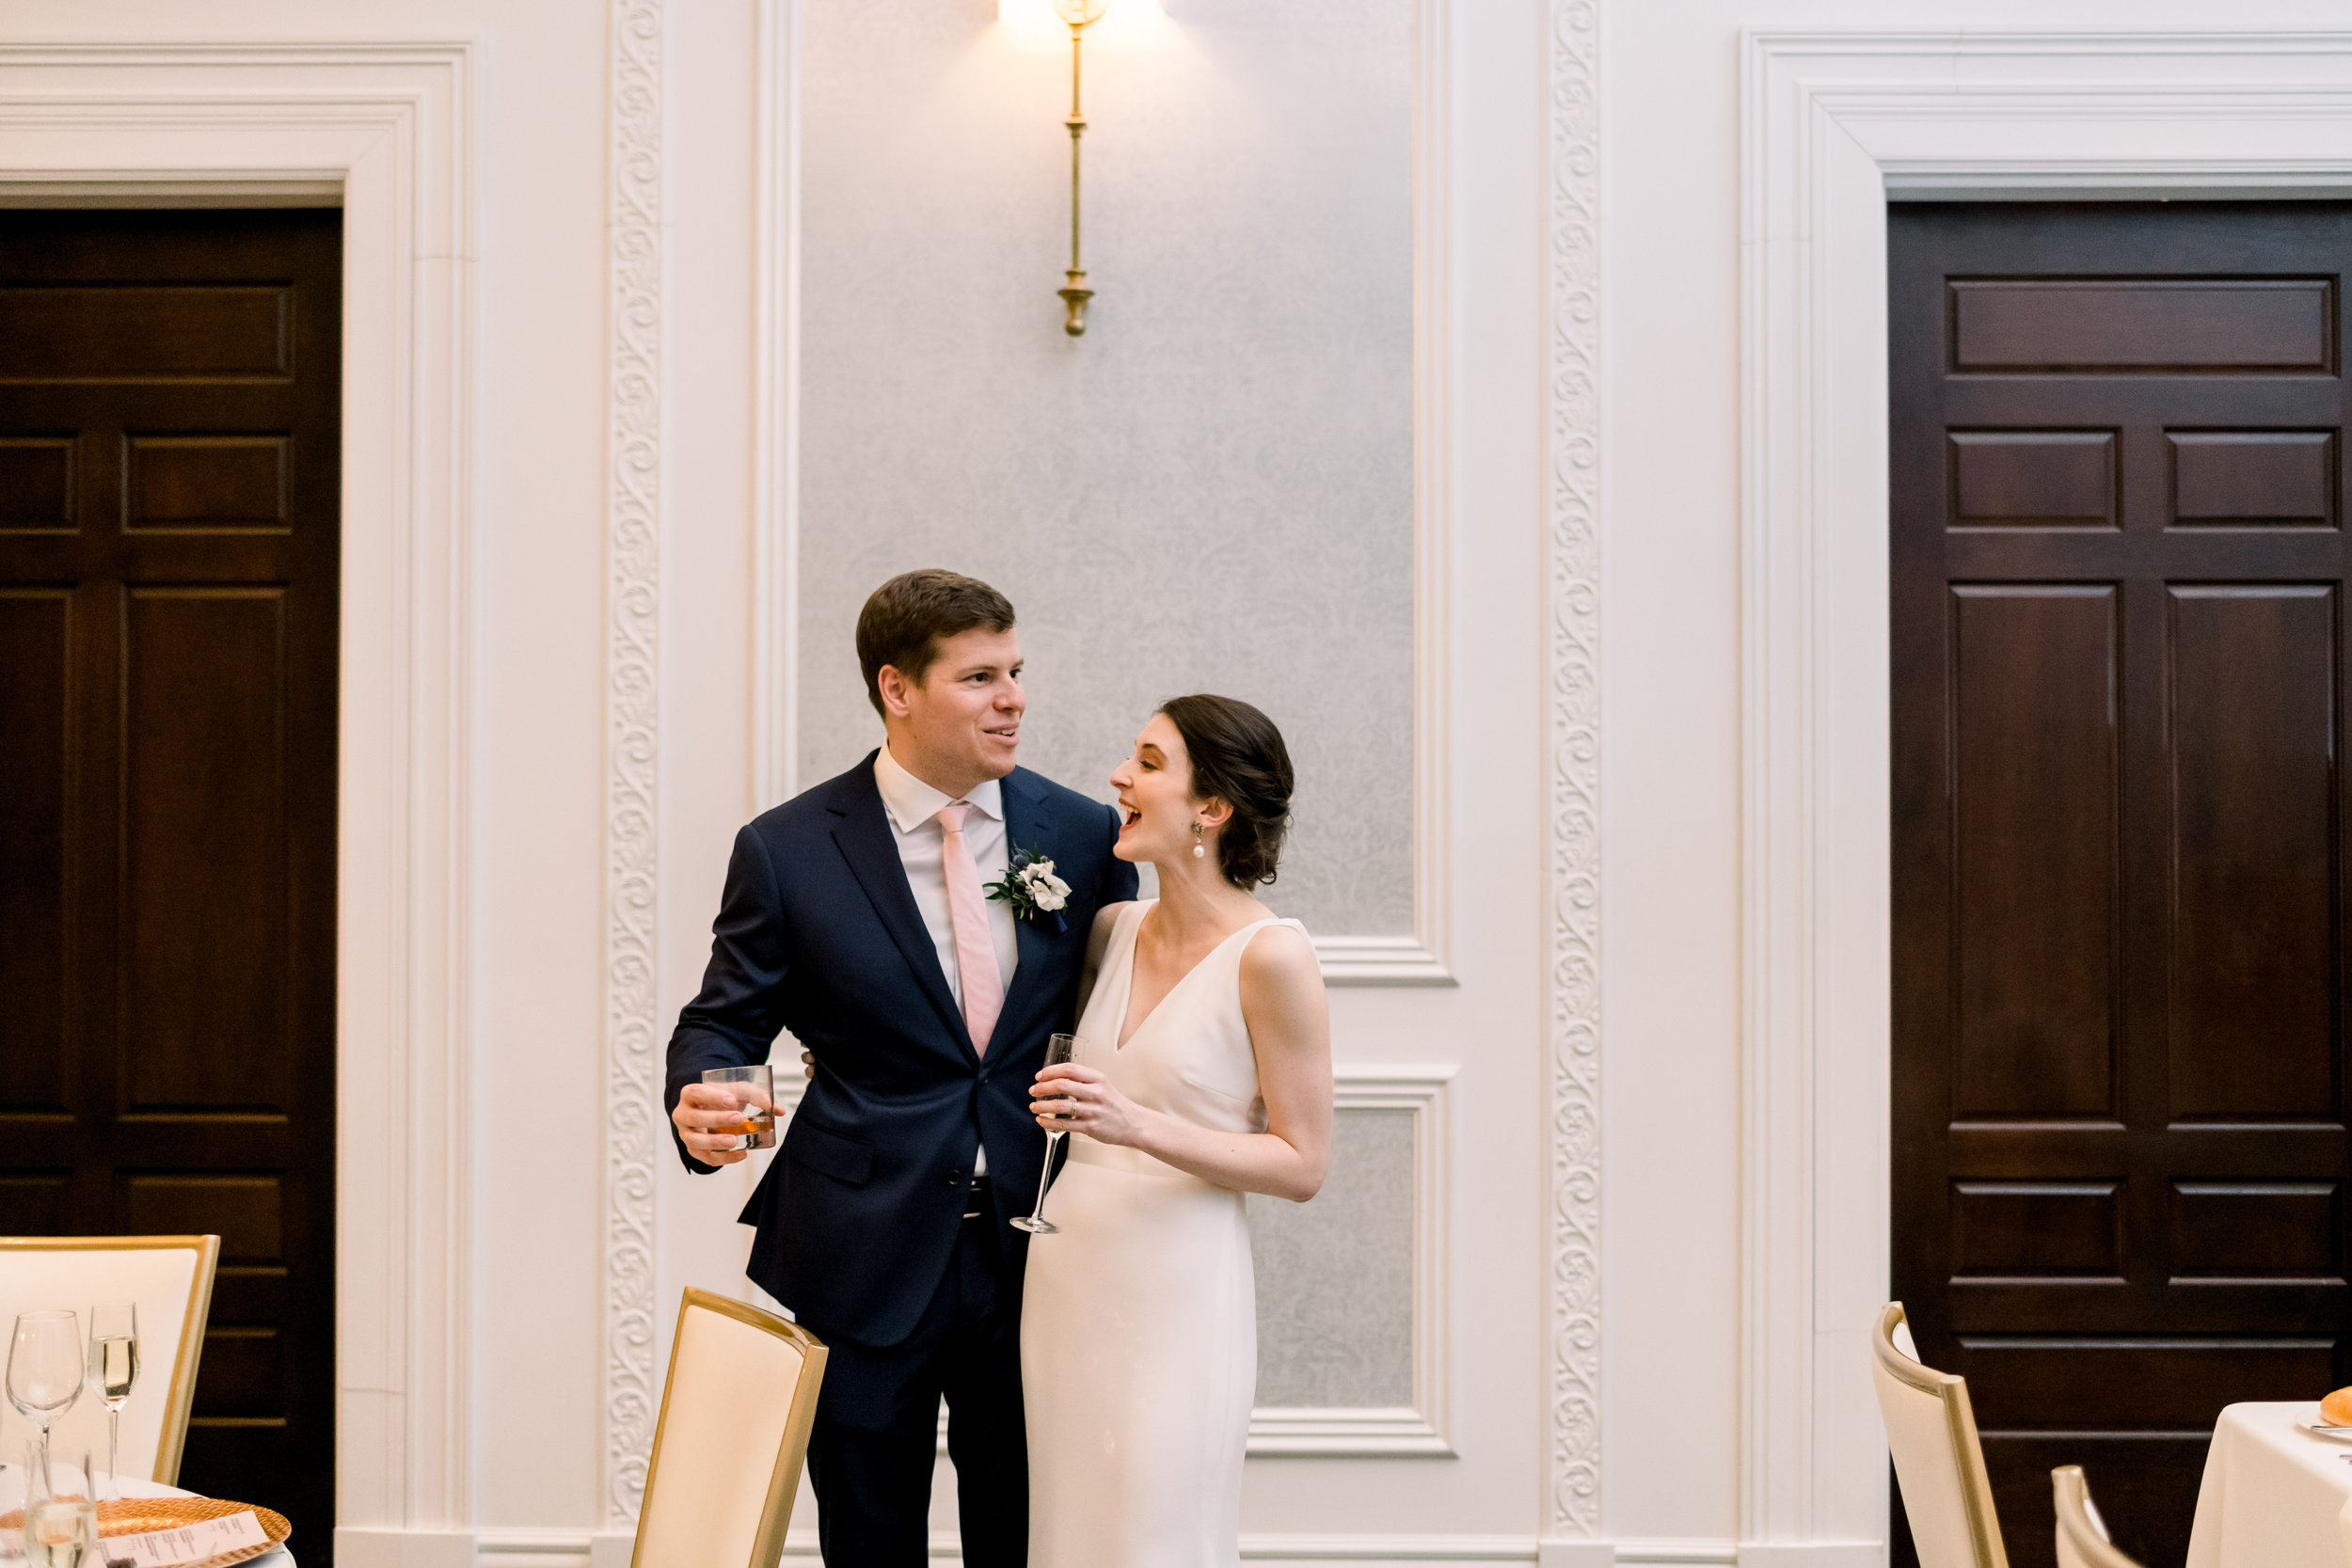 Bride and groom seeing their wedding reception decor for Pittsburgh wedding at Hotel Monaco planned by Exhale Events. Find more modern wedding ideas at exhale-events.com!